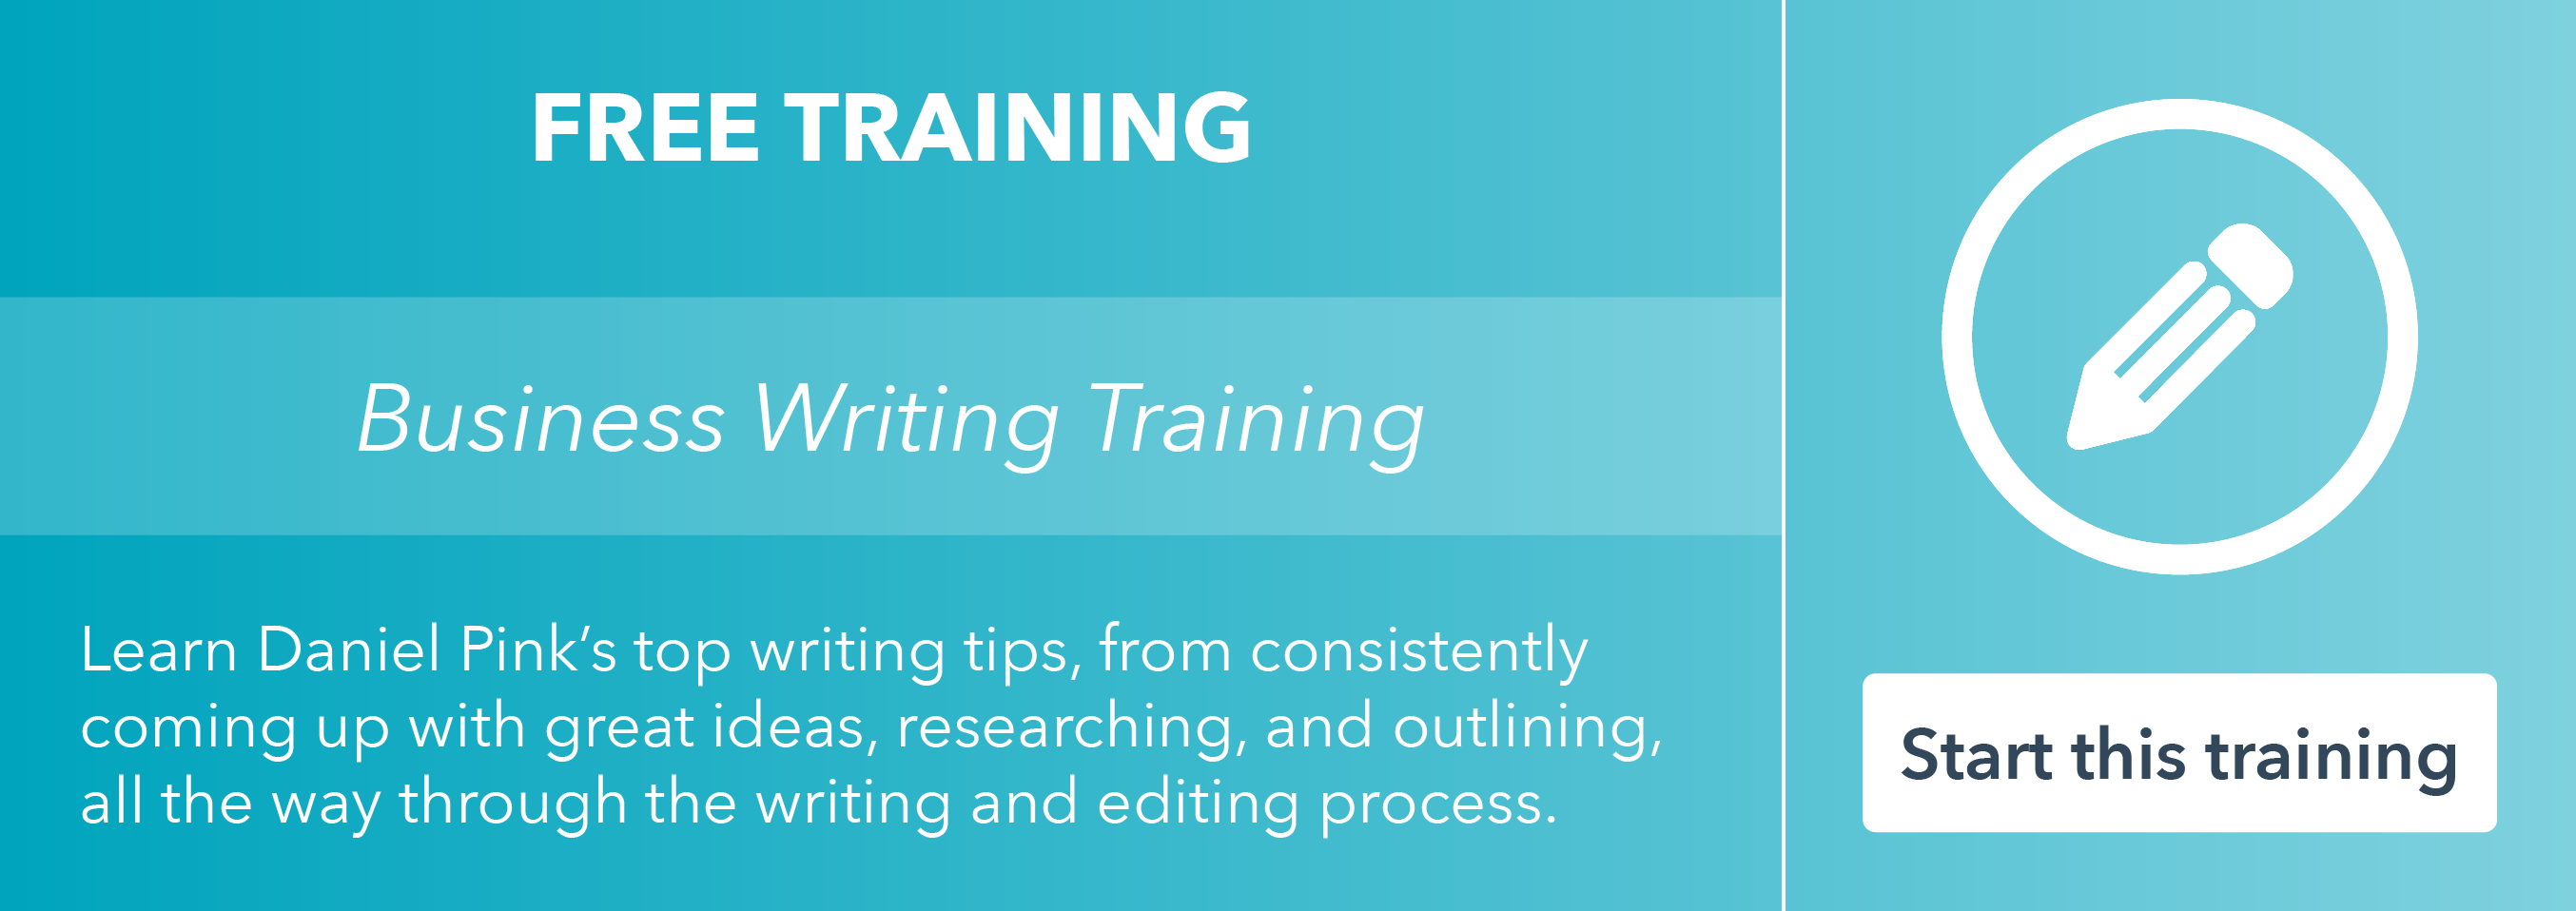 Take the free business writing training by HubSpot Academy!